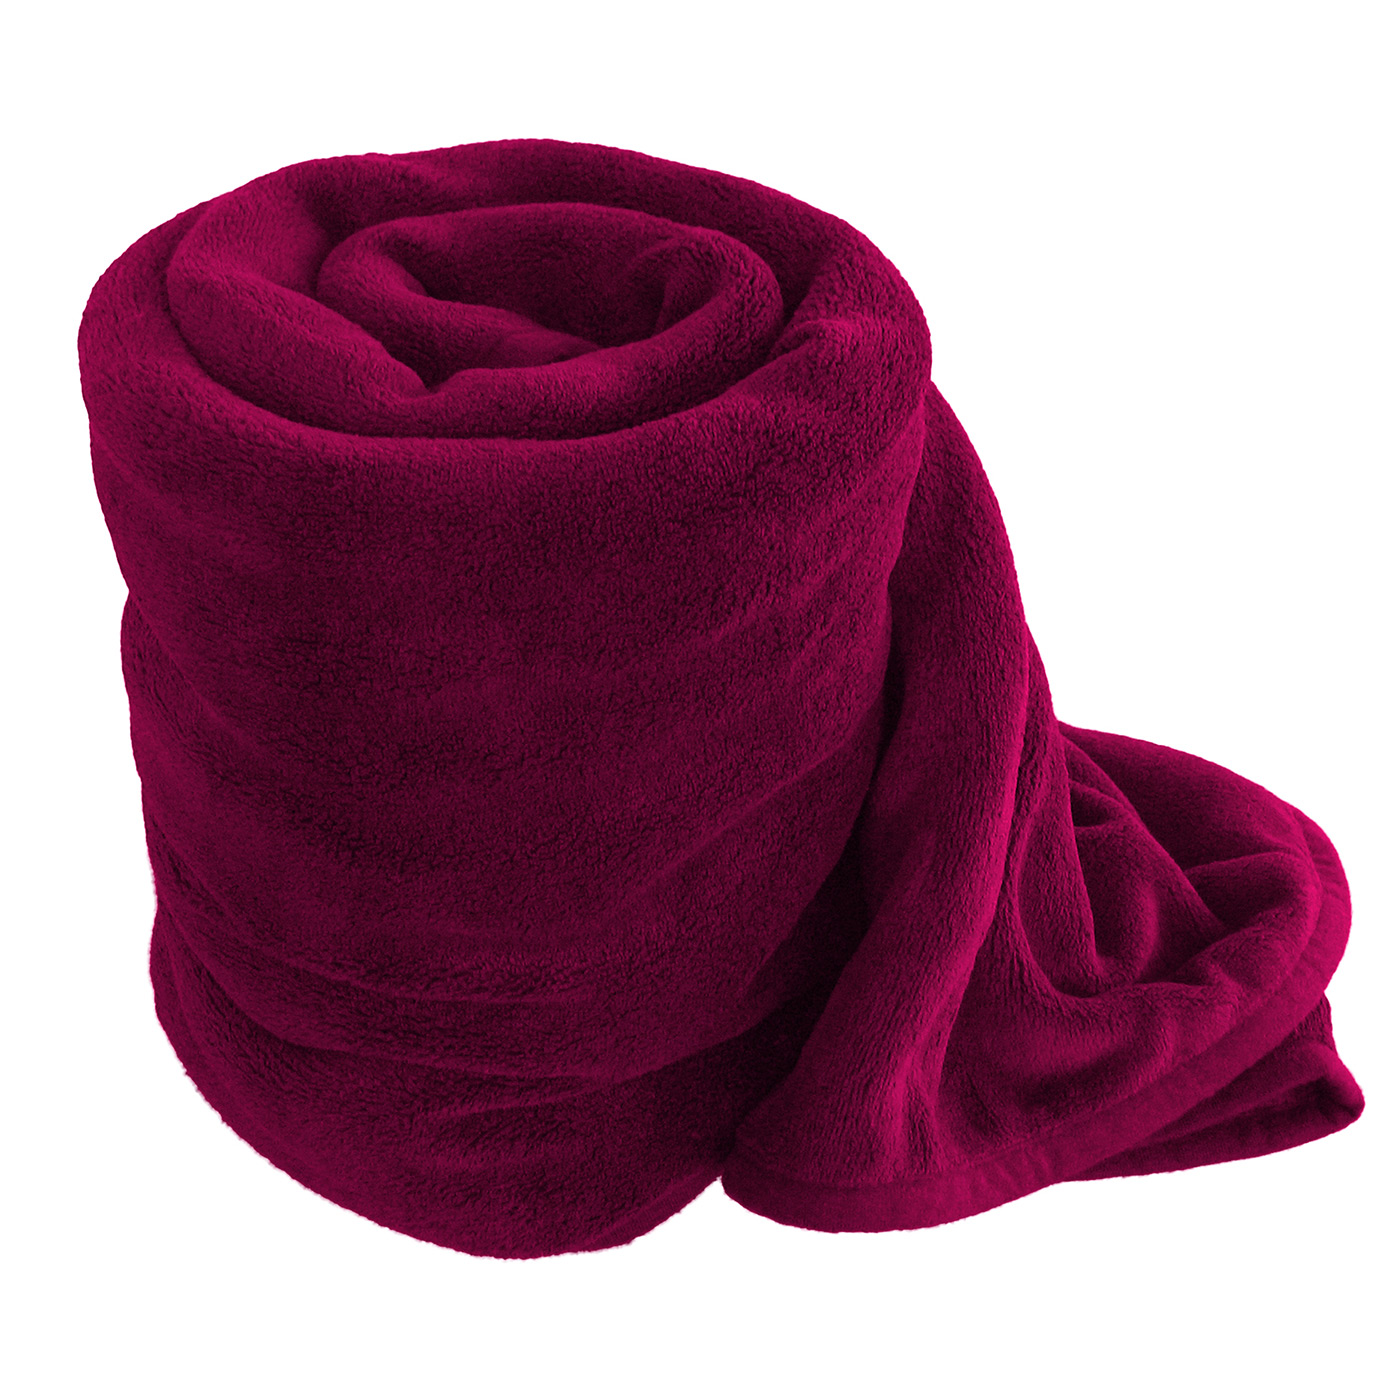 % Polyester GSM Fleece Throw Blanket. 12 Pack Wholesale Soft Comfy Fleece Blankets - 60